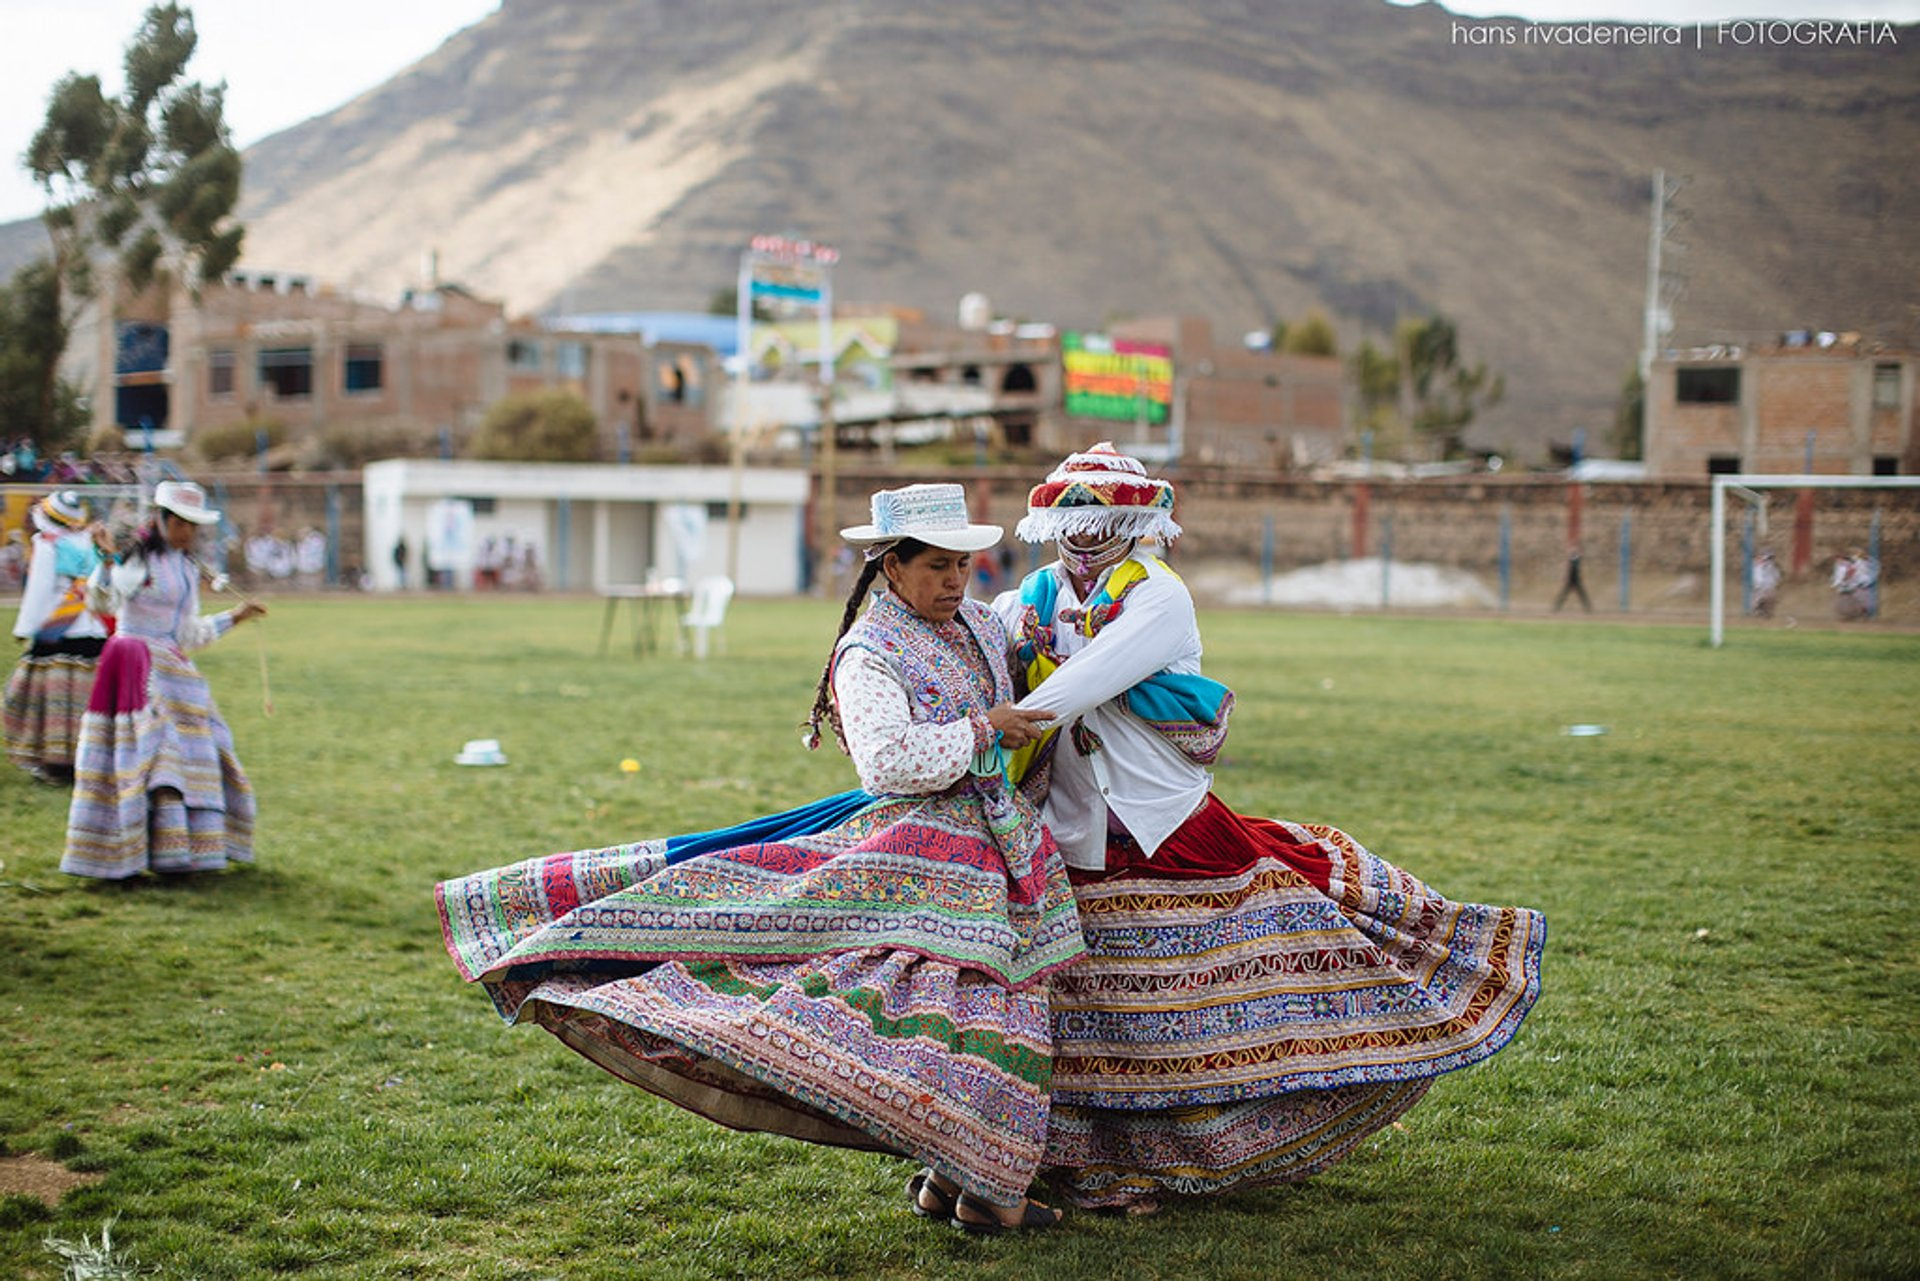 Wititi Dance in Peru - Best Time